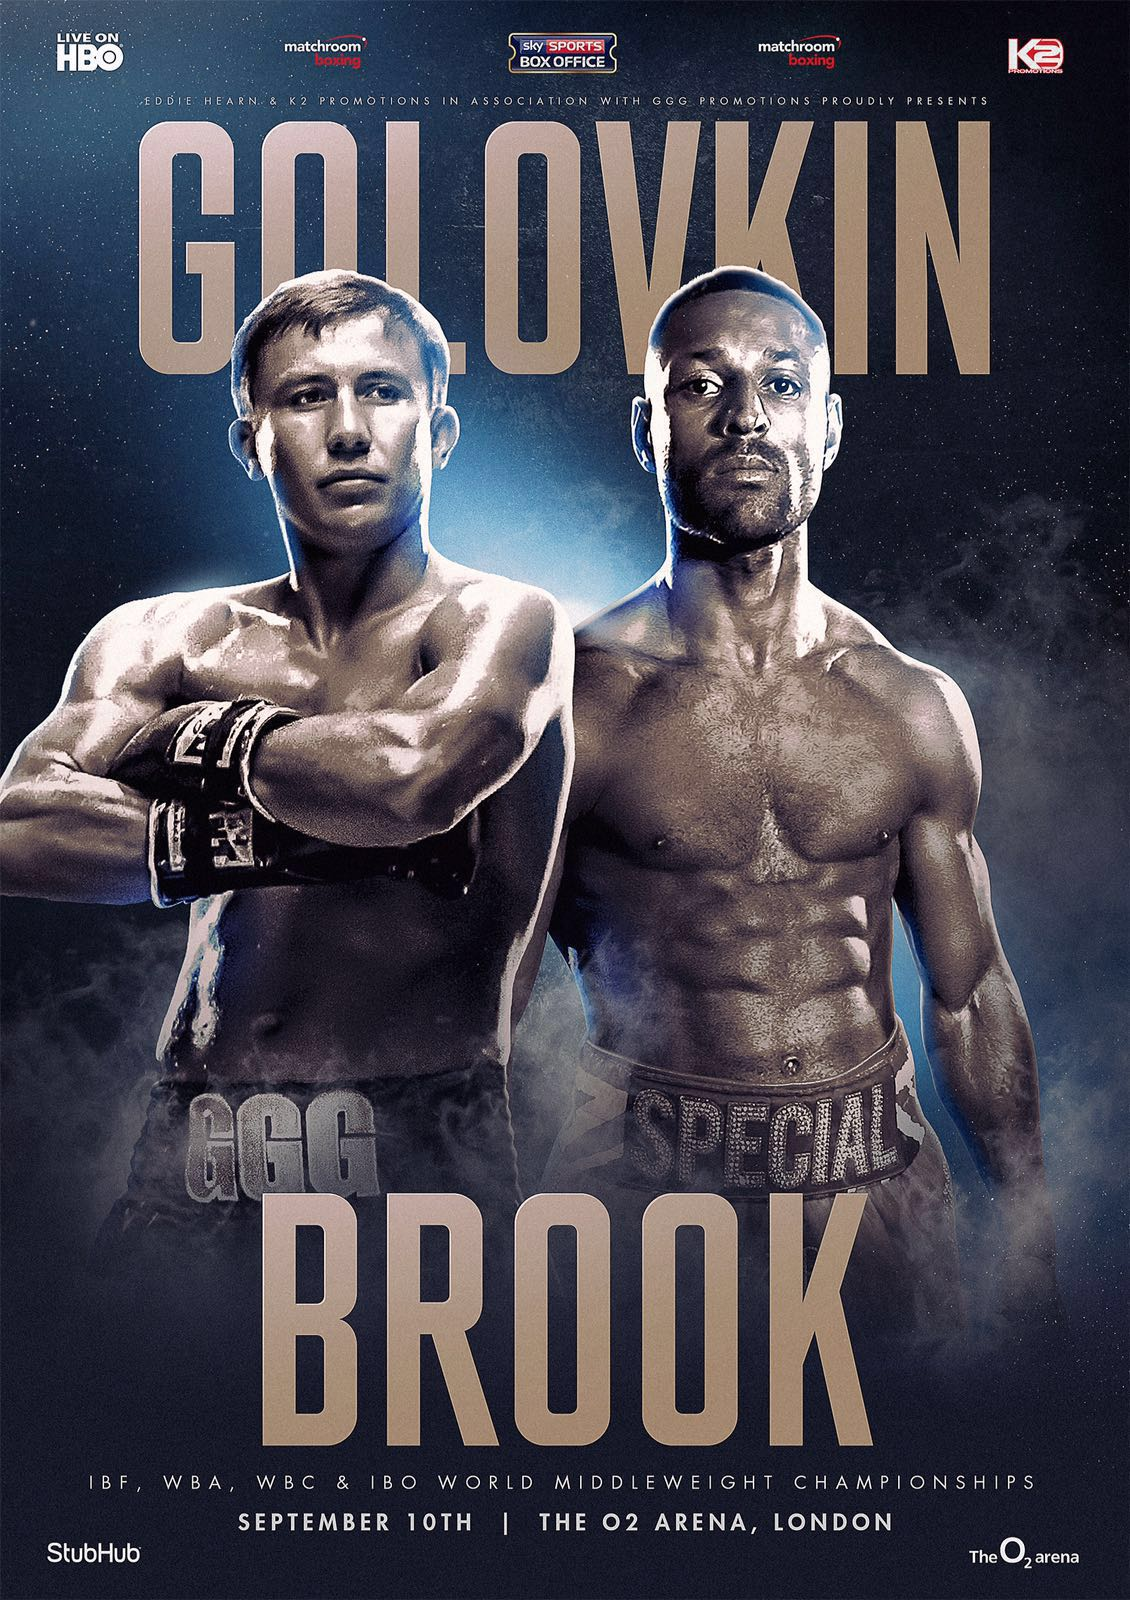 Boxing_Poster_MatchroomBoxing_GennadyGolovkin_KellBrook_2016_091016